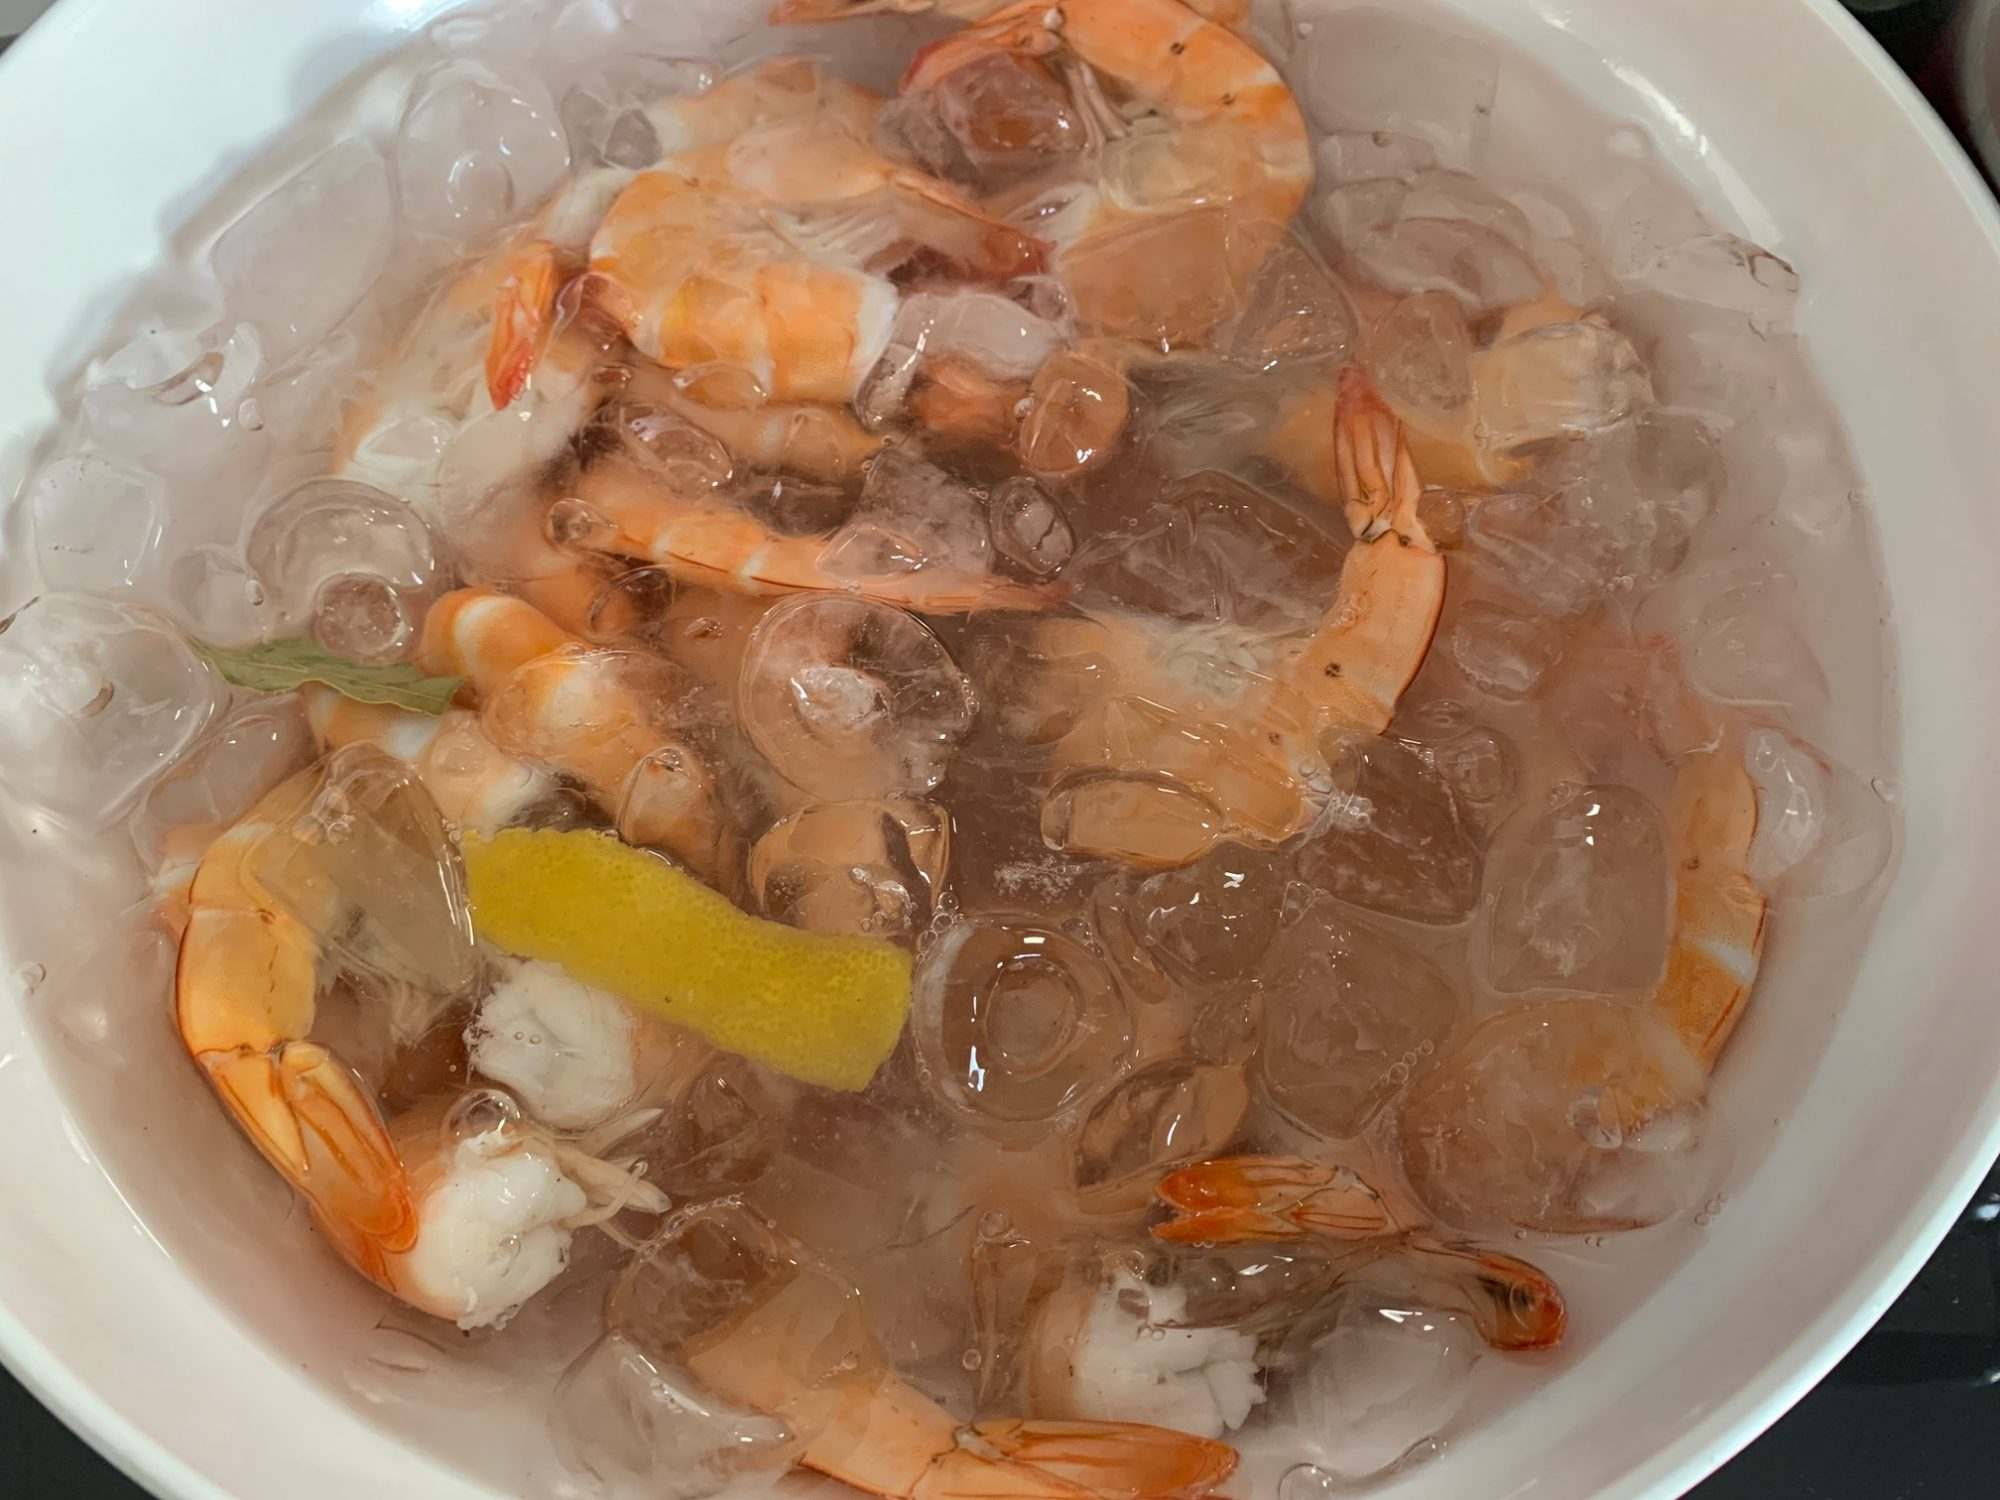 shrimp in ice water